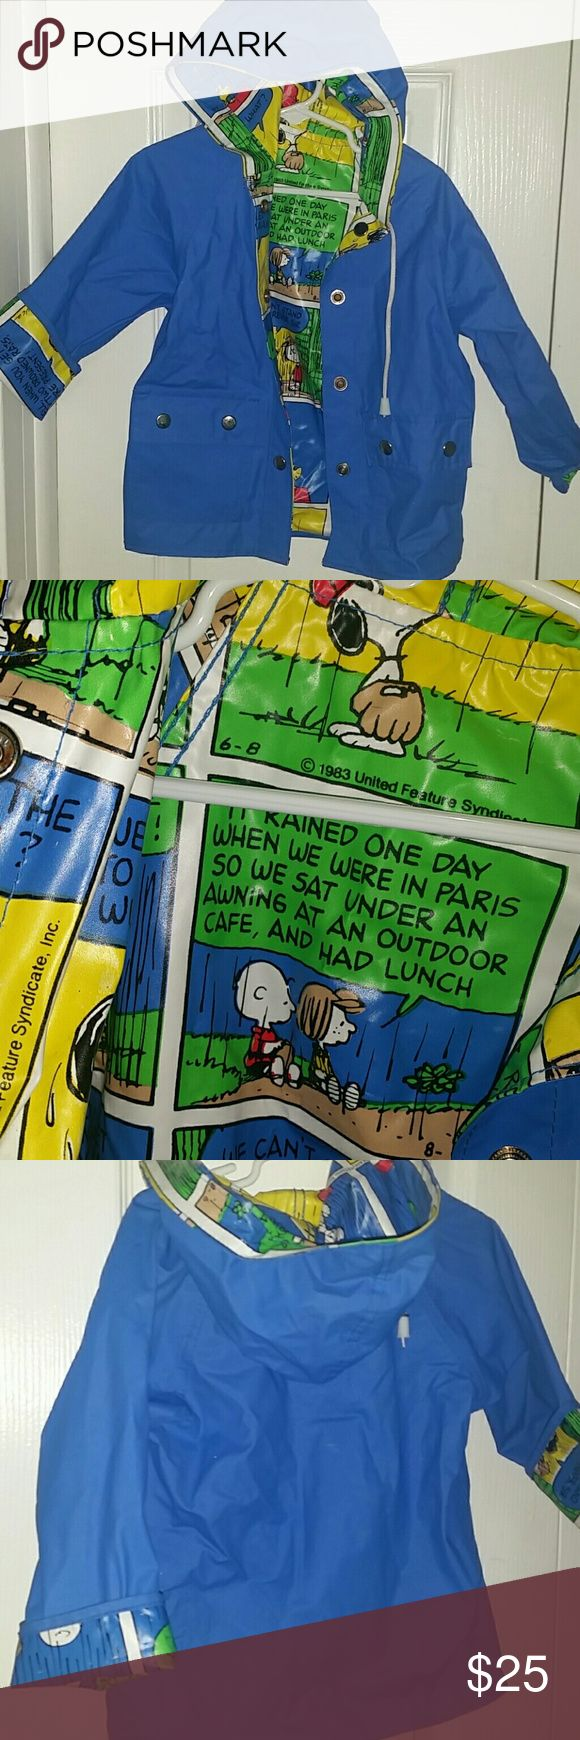 2t raincoat with comic Snoopy interior like new! Very vibrant blue raincoat that has interior ,cuffs  and  Hood with all Snoopy comics from the eighties but this is a brand new item from within the last year. It doesn't have a tag with an H on it but I know that my son works at 2 years old and probably would still fit into it at 3 but it would be a little small Jackets & Coats Raincoats